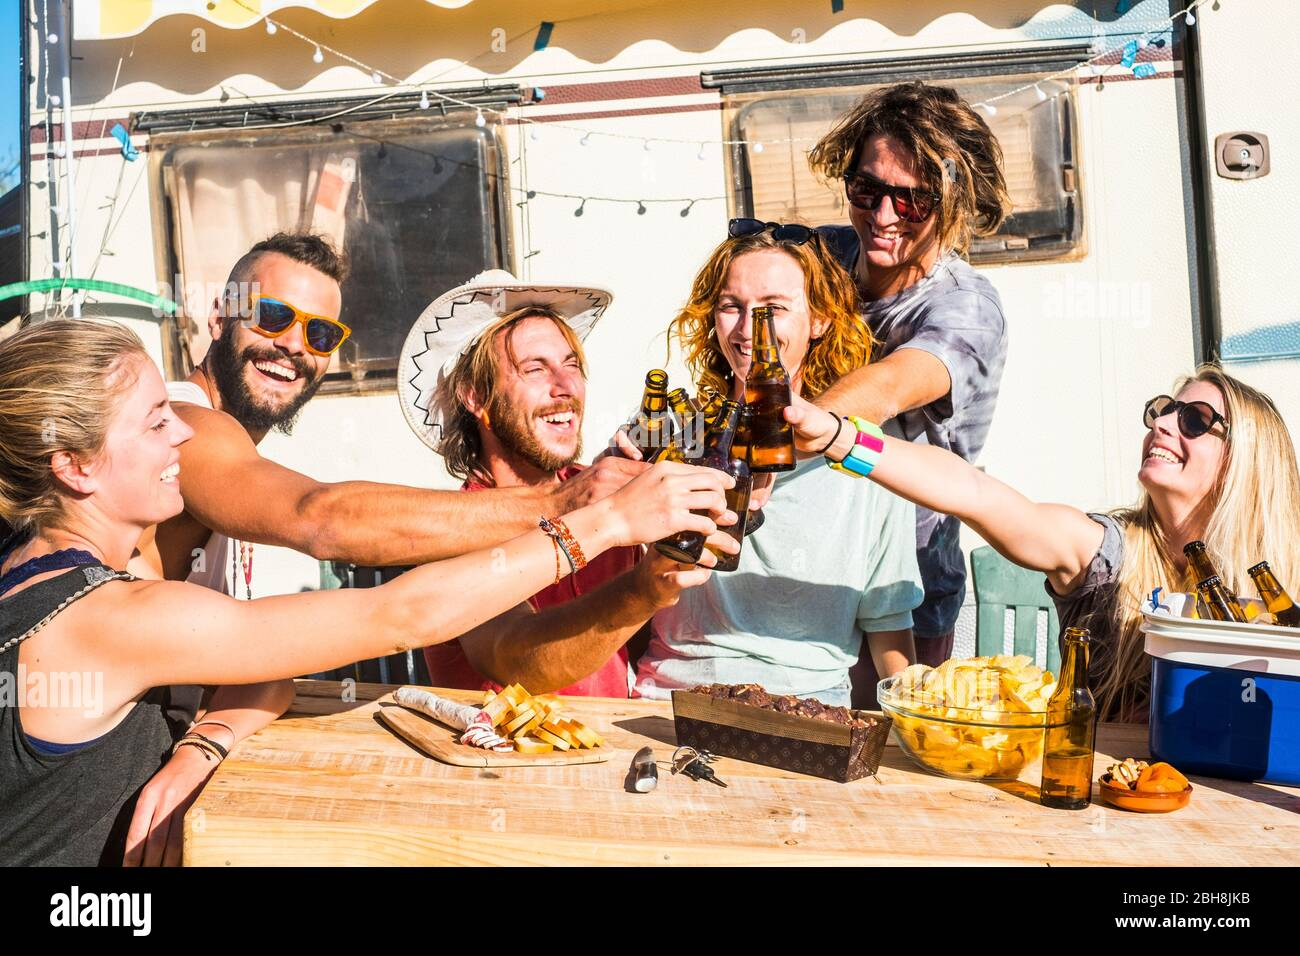 Group of happy friends tosting and clinking together beer with happiness - nice people with nature and outdoor lifestyle - boys and girls smiling and laughing with alternative caravan in background Stock Photo